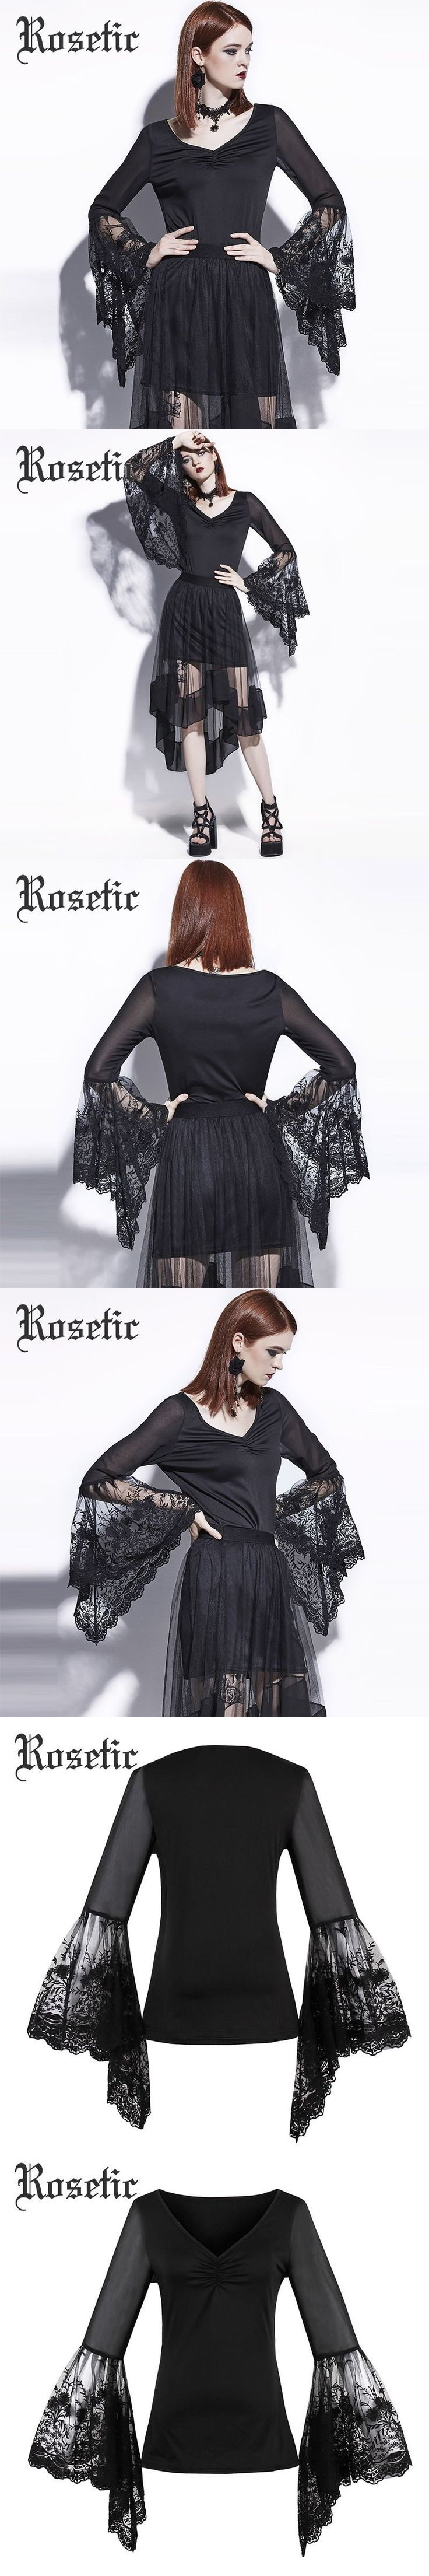 Rosetic Gothic Blouse Black Lace Flare Sleeve Slim Women Autumn Casual Shirts Fashion Goth Sexy Young Girl Tops Gothic Blouses